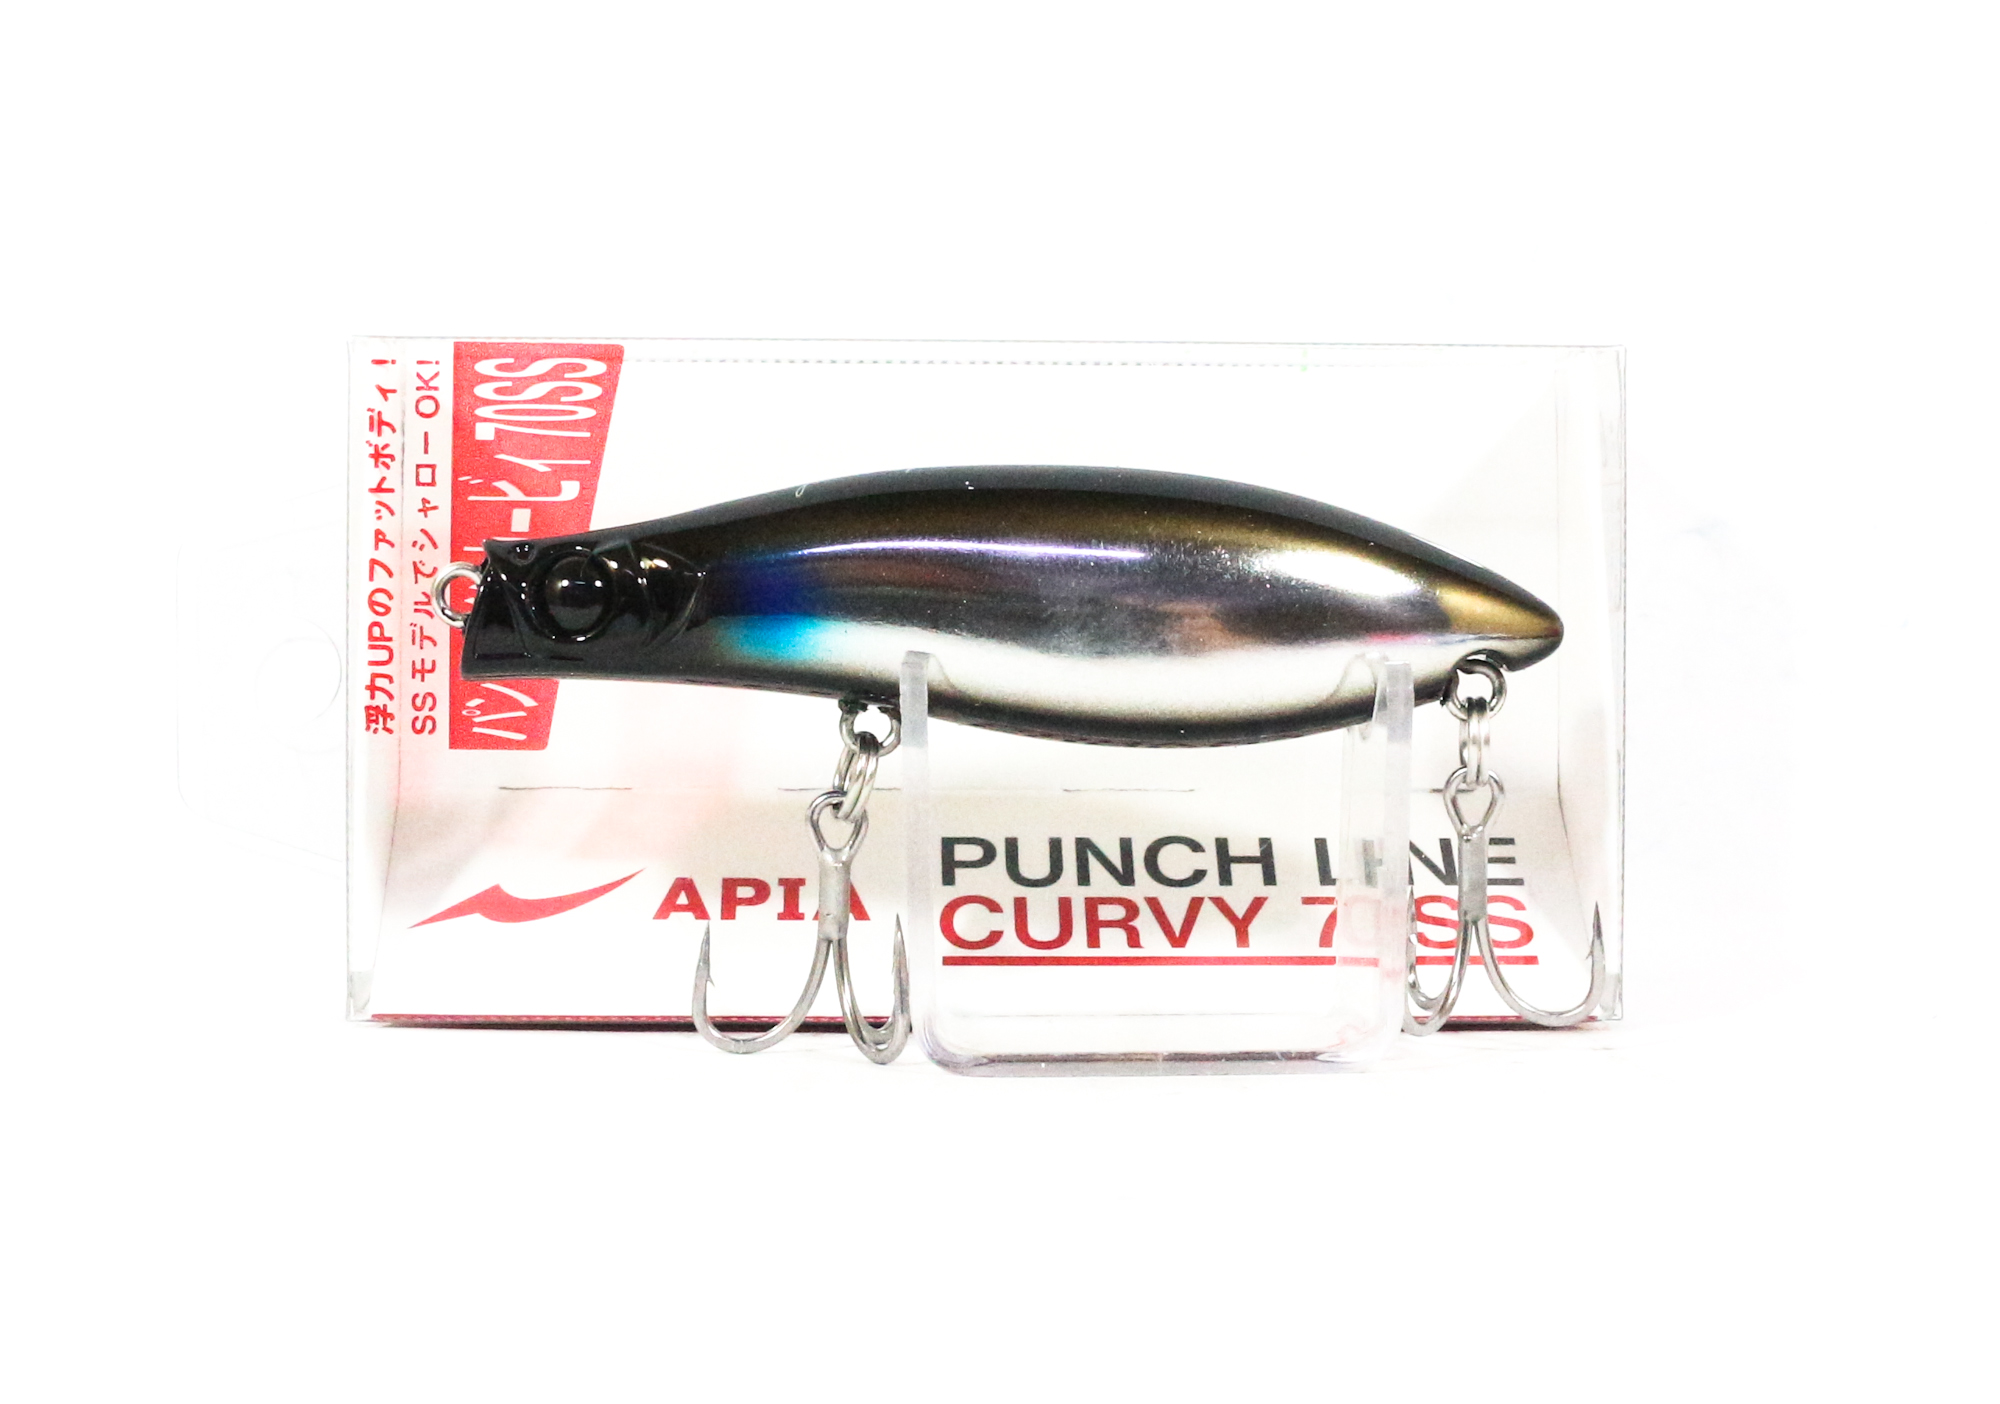 Apia Punch Line Curvy 70SS Pencil Sinking Lure 08 (0078)